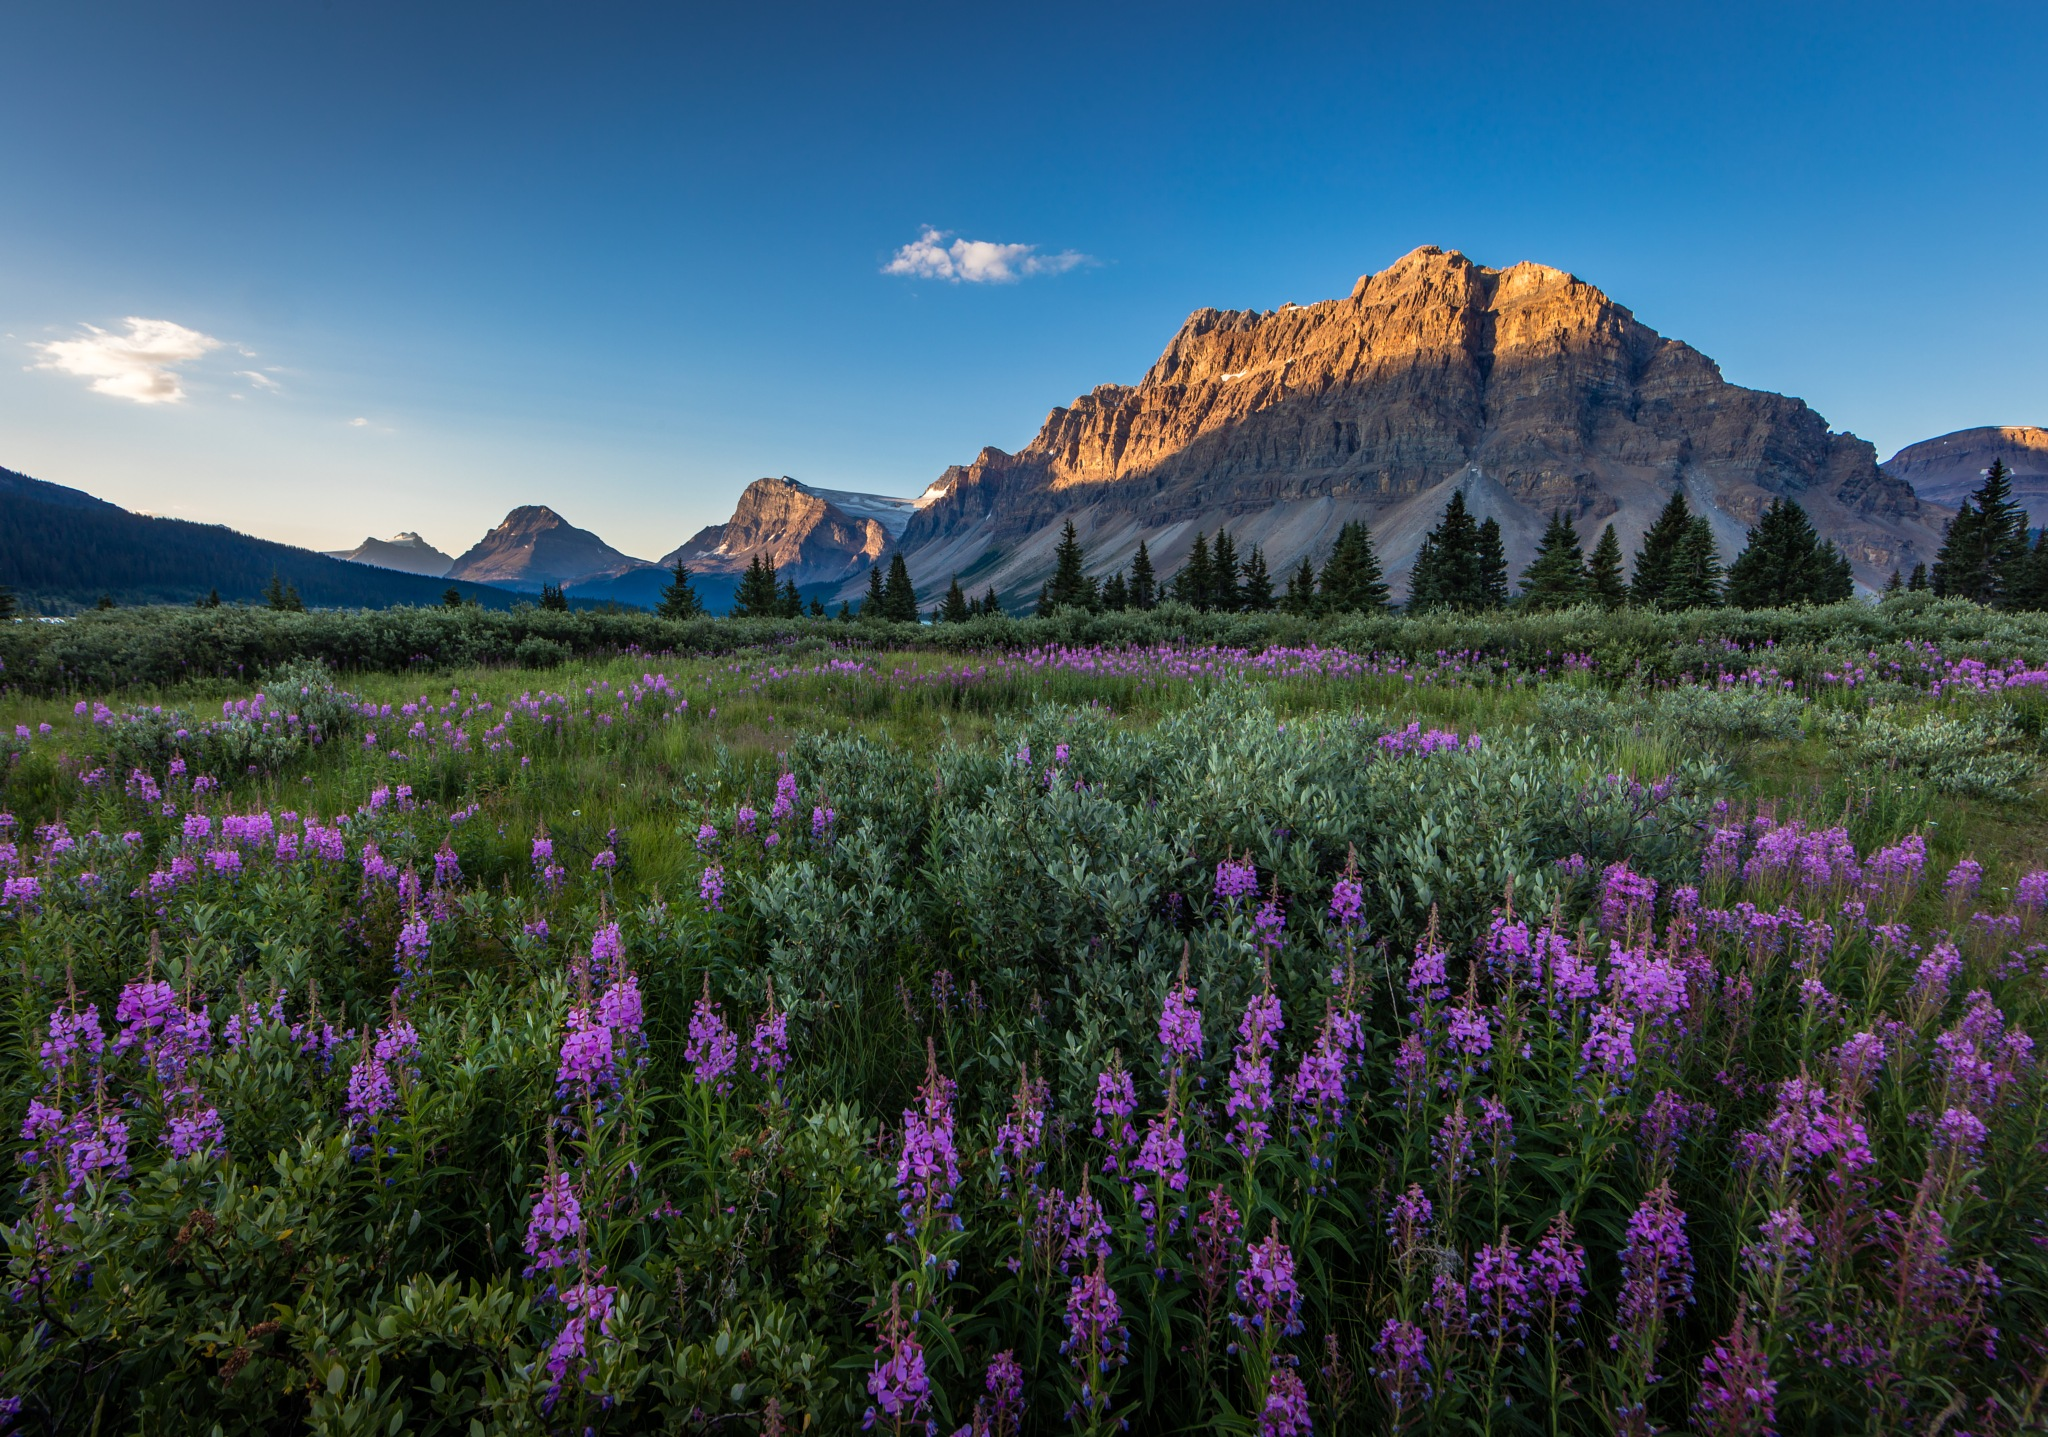 Lupine II by Bill Settle